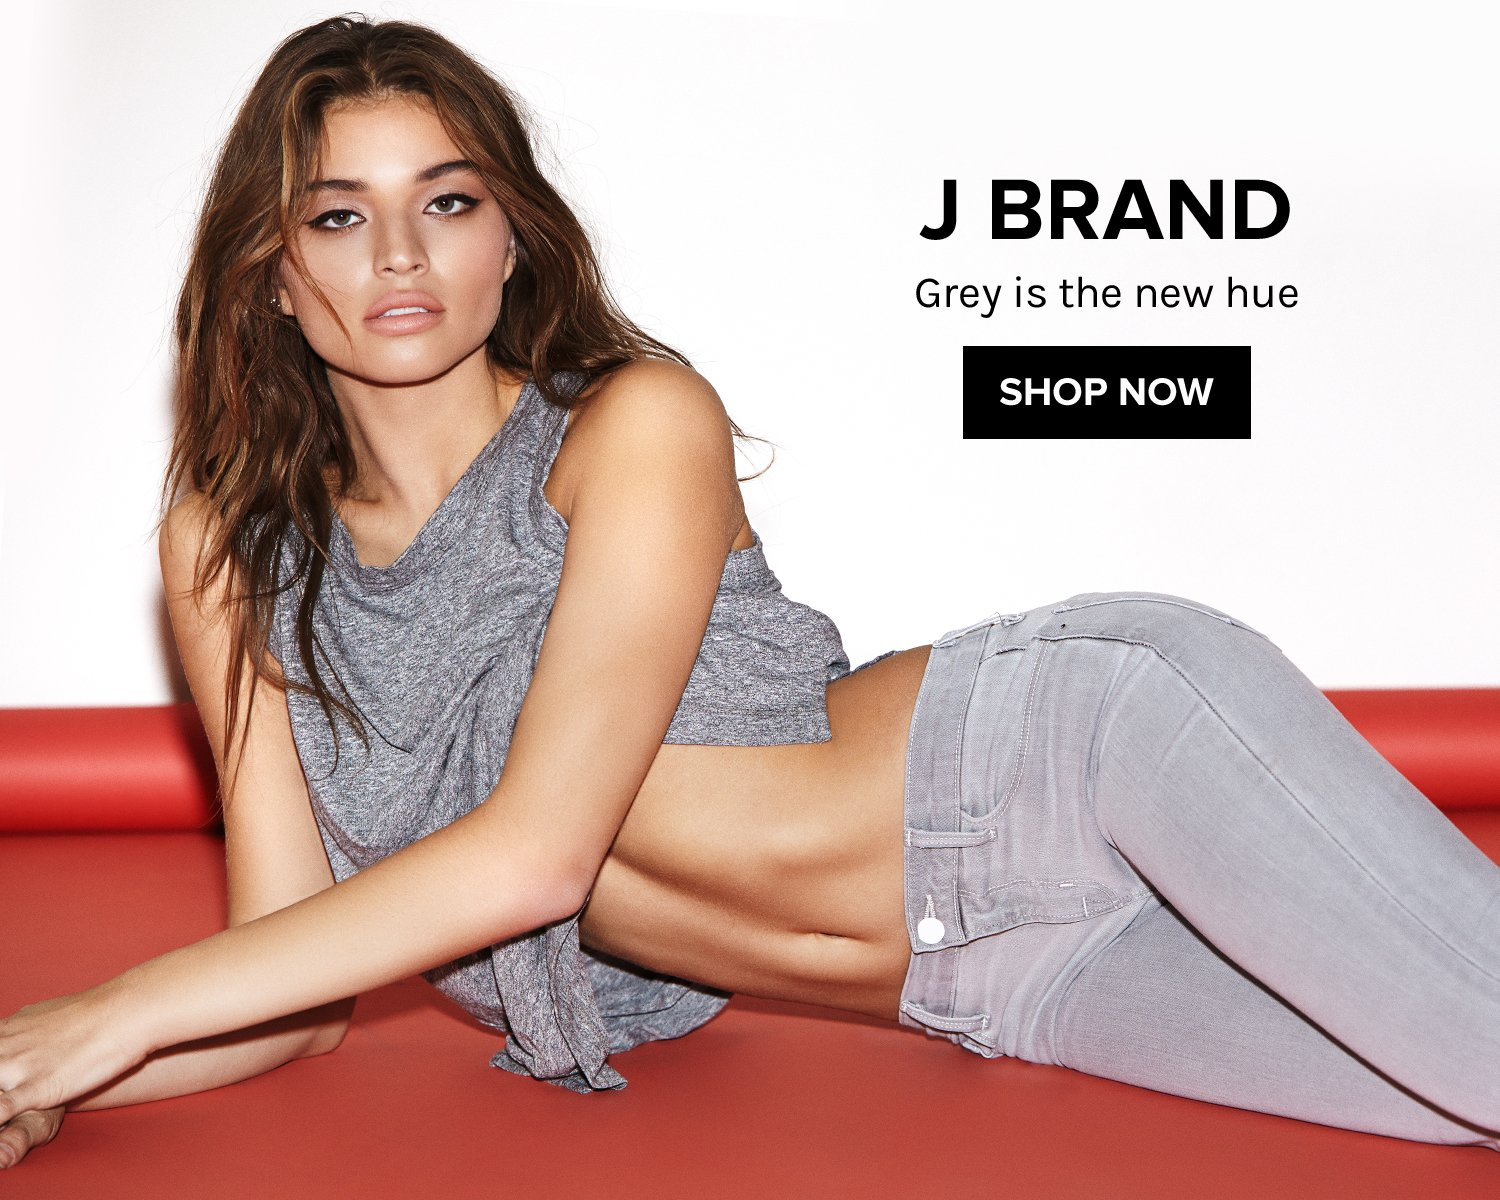 J BRAND. Grey is the new hue. SHOP NOW!